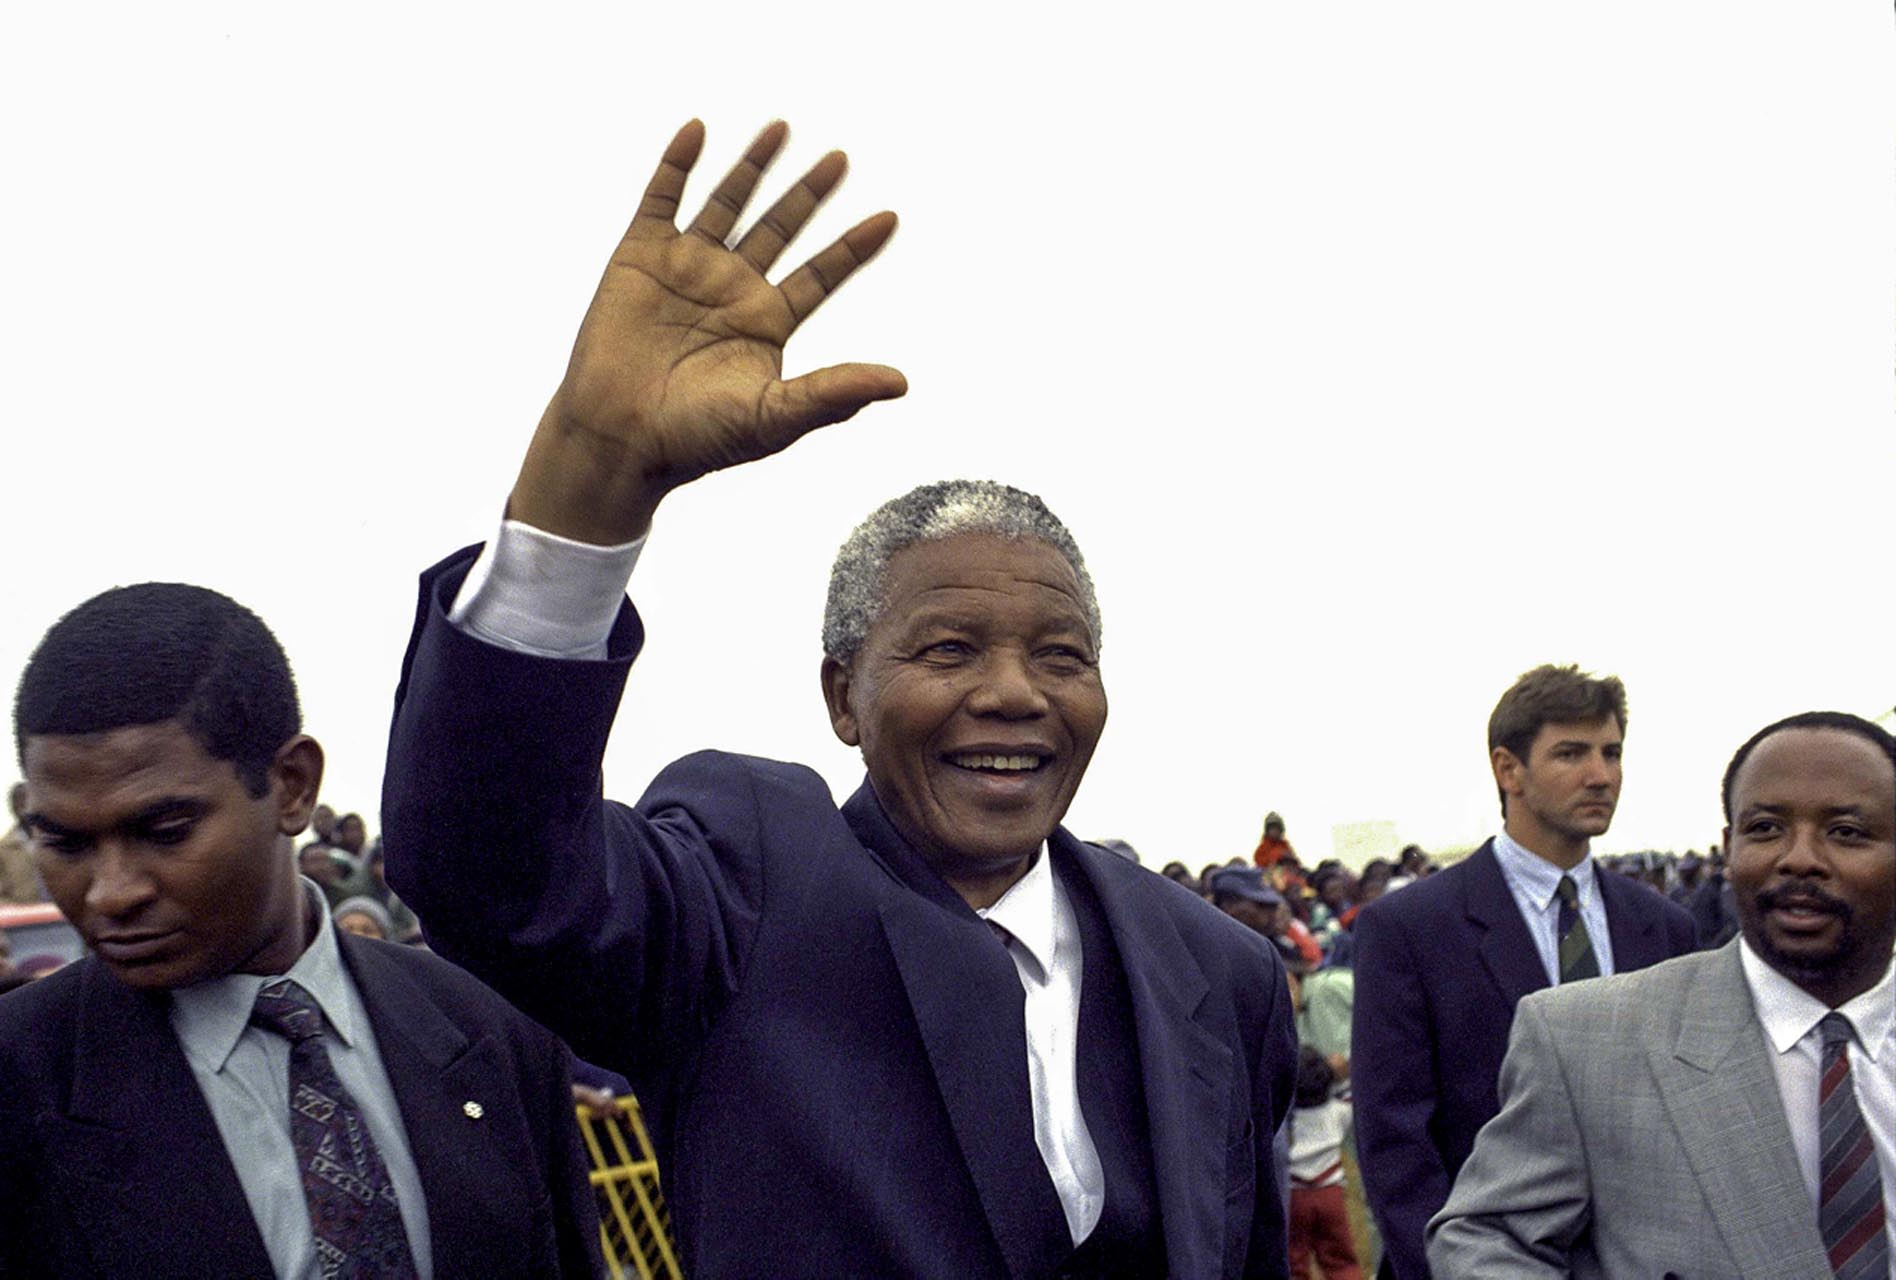 20031208SH37: President Nelson Mandela gives a wave while leaving Avalon cemetery. Before shaking the hands of some of the survivors of the SS Mendi ship disaster, while attending the 82nd commemoration of SS Mendi at the Avalon Cemetary. The SS Mendi was a steamship that was sunk in 1916  while transporting soldiers to France during the world war one, 646 soldiers died and 607 among the dead were African. (Photo